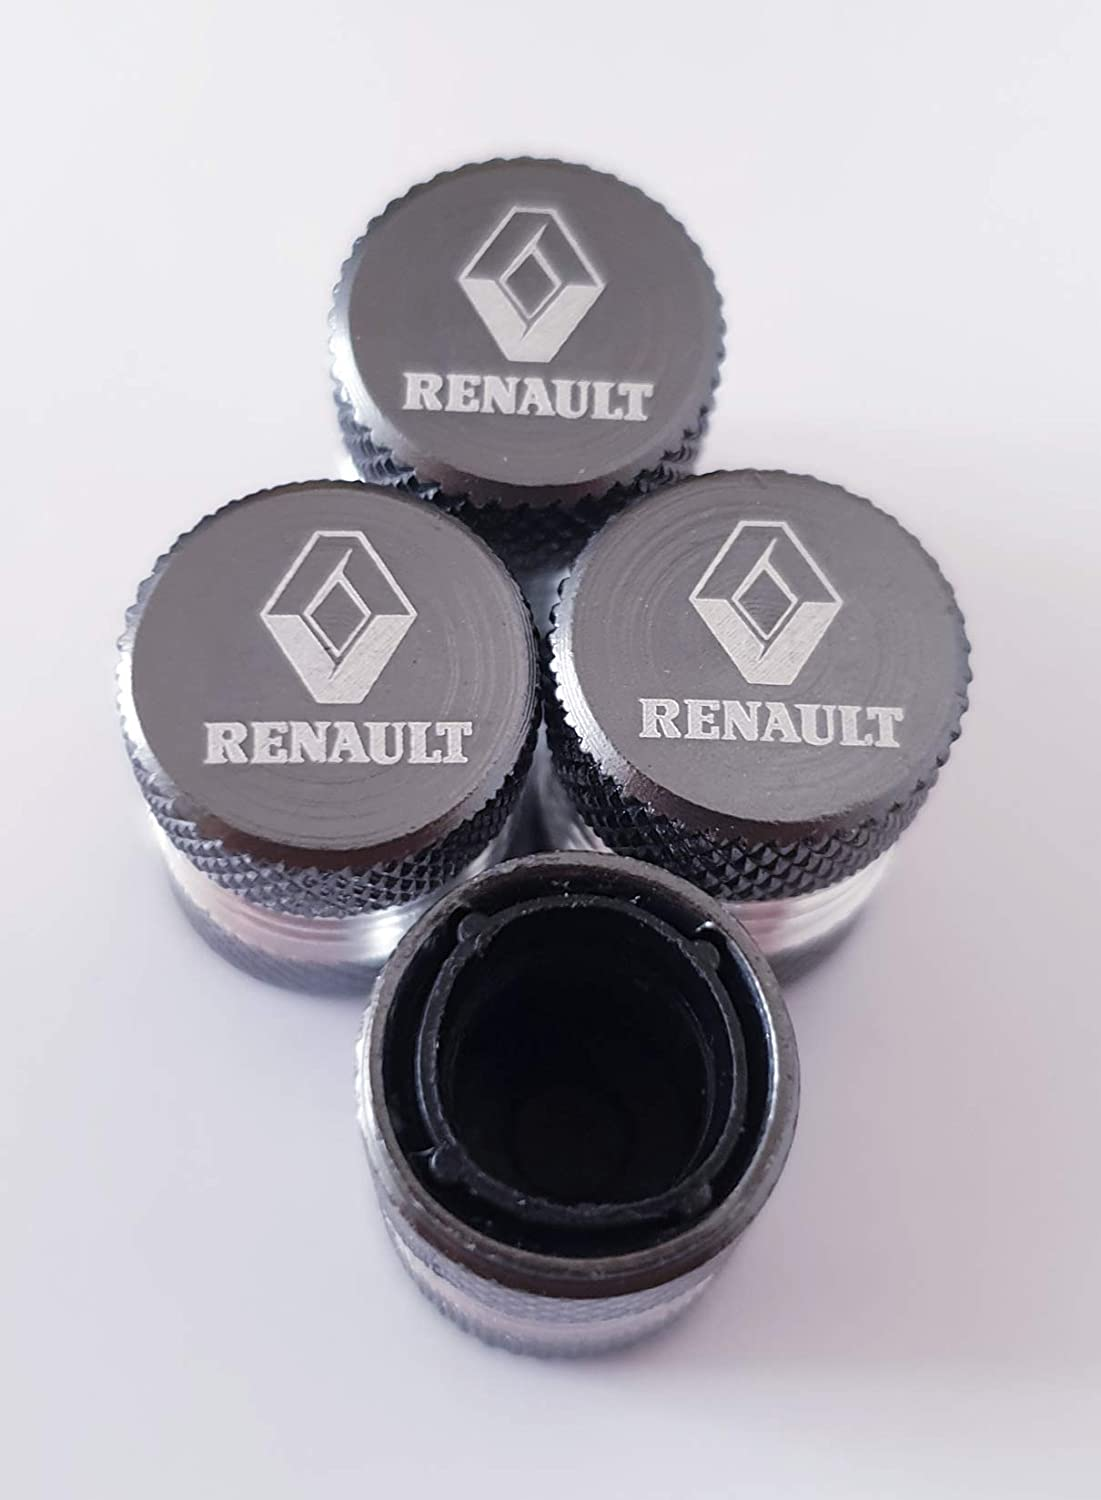 Speed Demons RENAULT Grey Laser Engraved Valve Dust Caps for all models Cars with Plastic Insides Non Stick to Valves